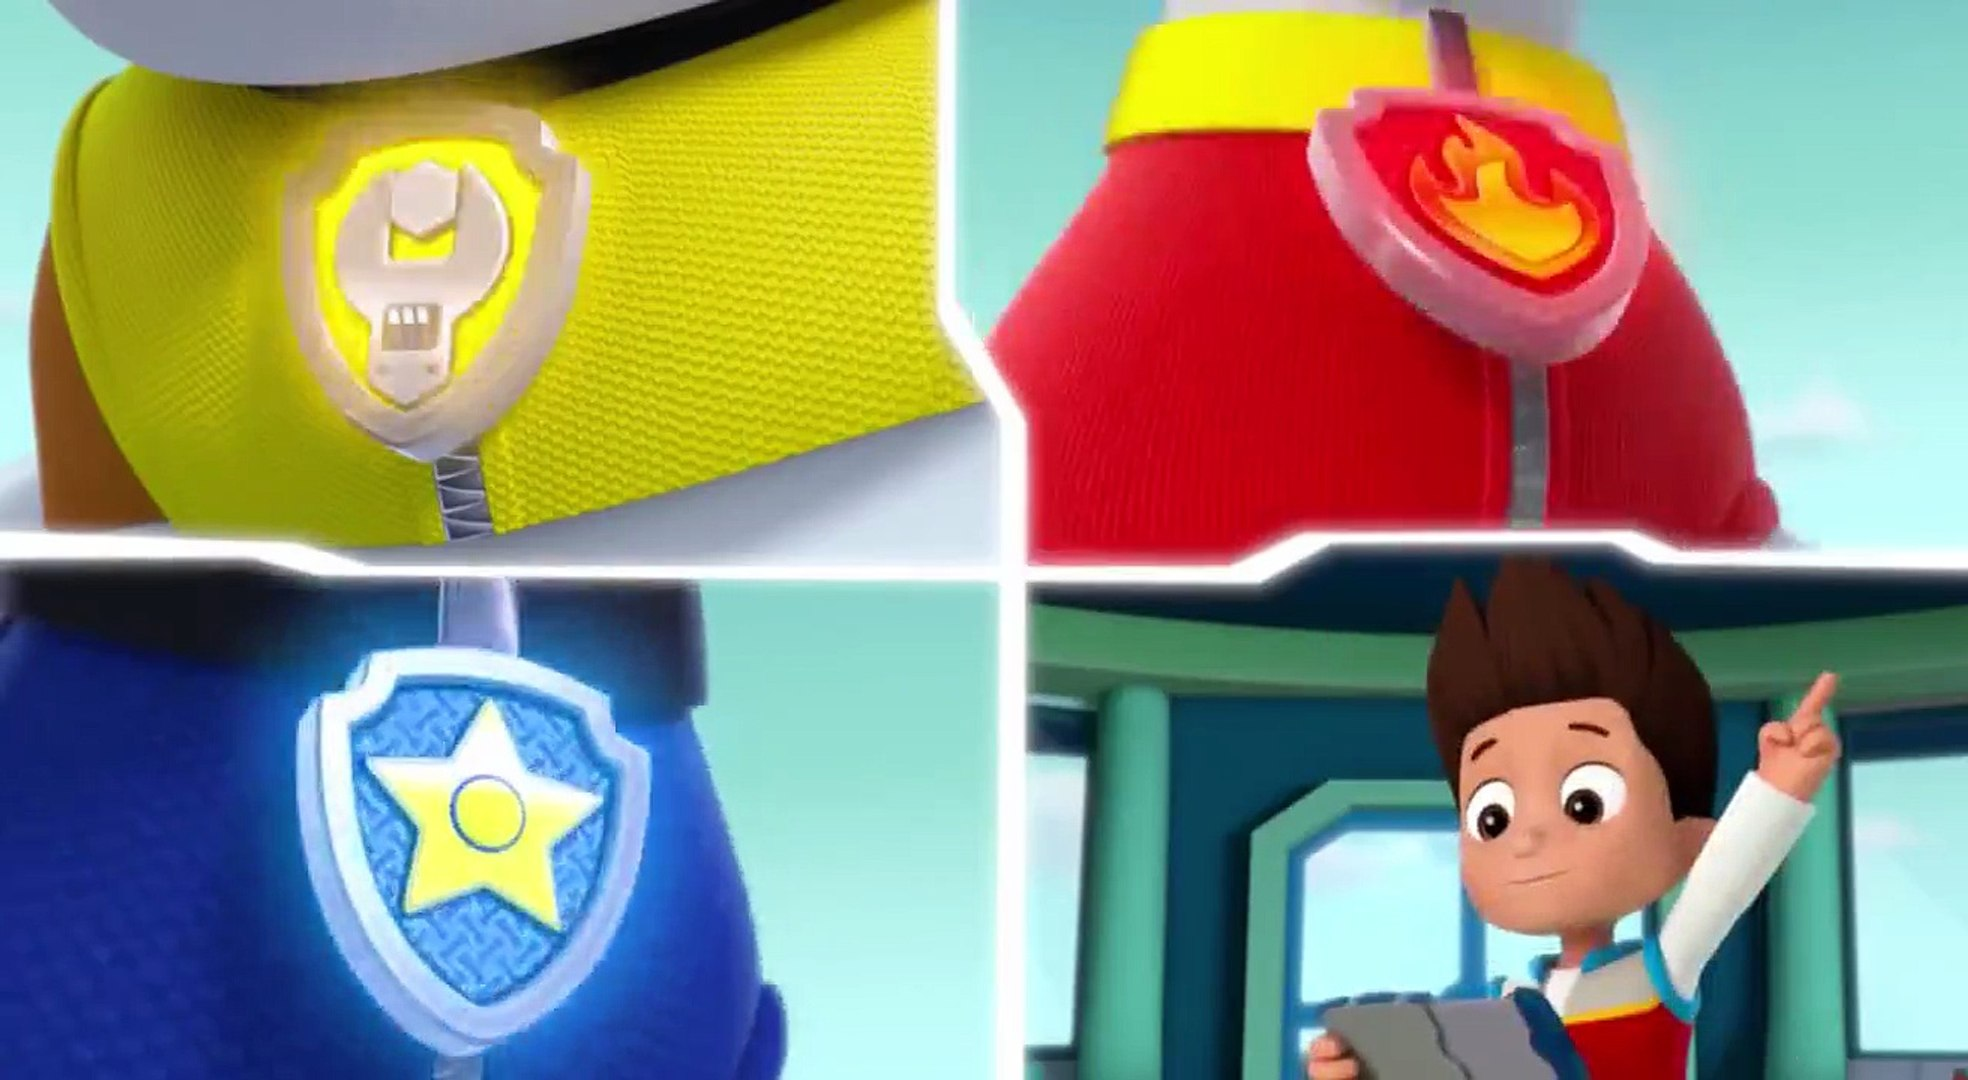 Paw Patrol - S 2 E 8 - Pups And The Big Freeze - Pups Save A Basketball Game